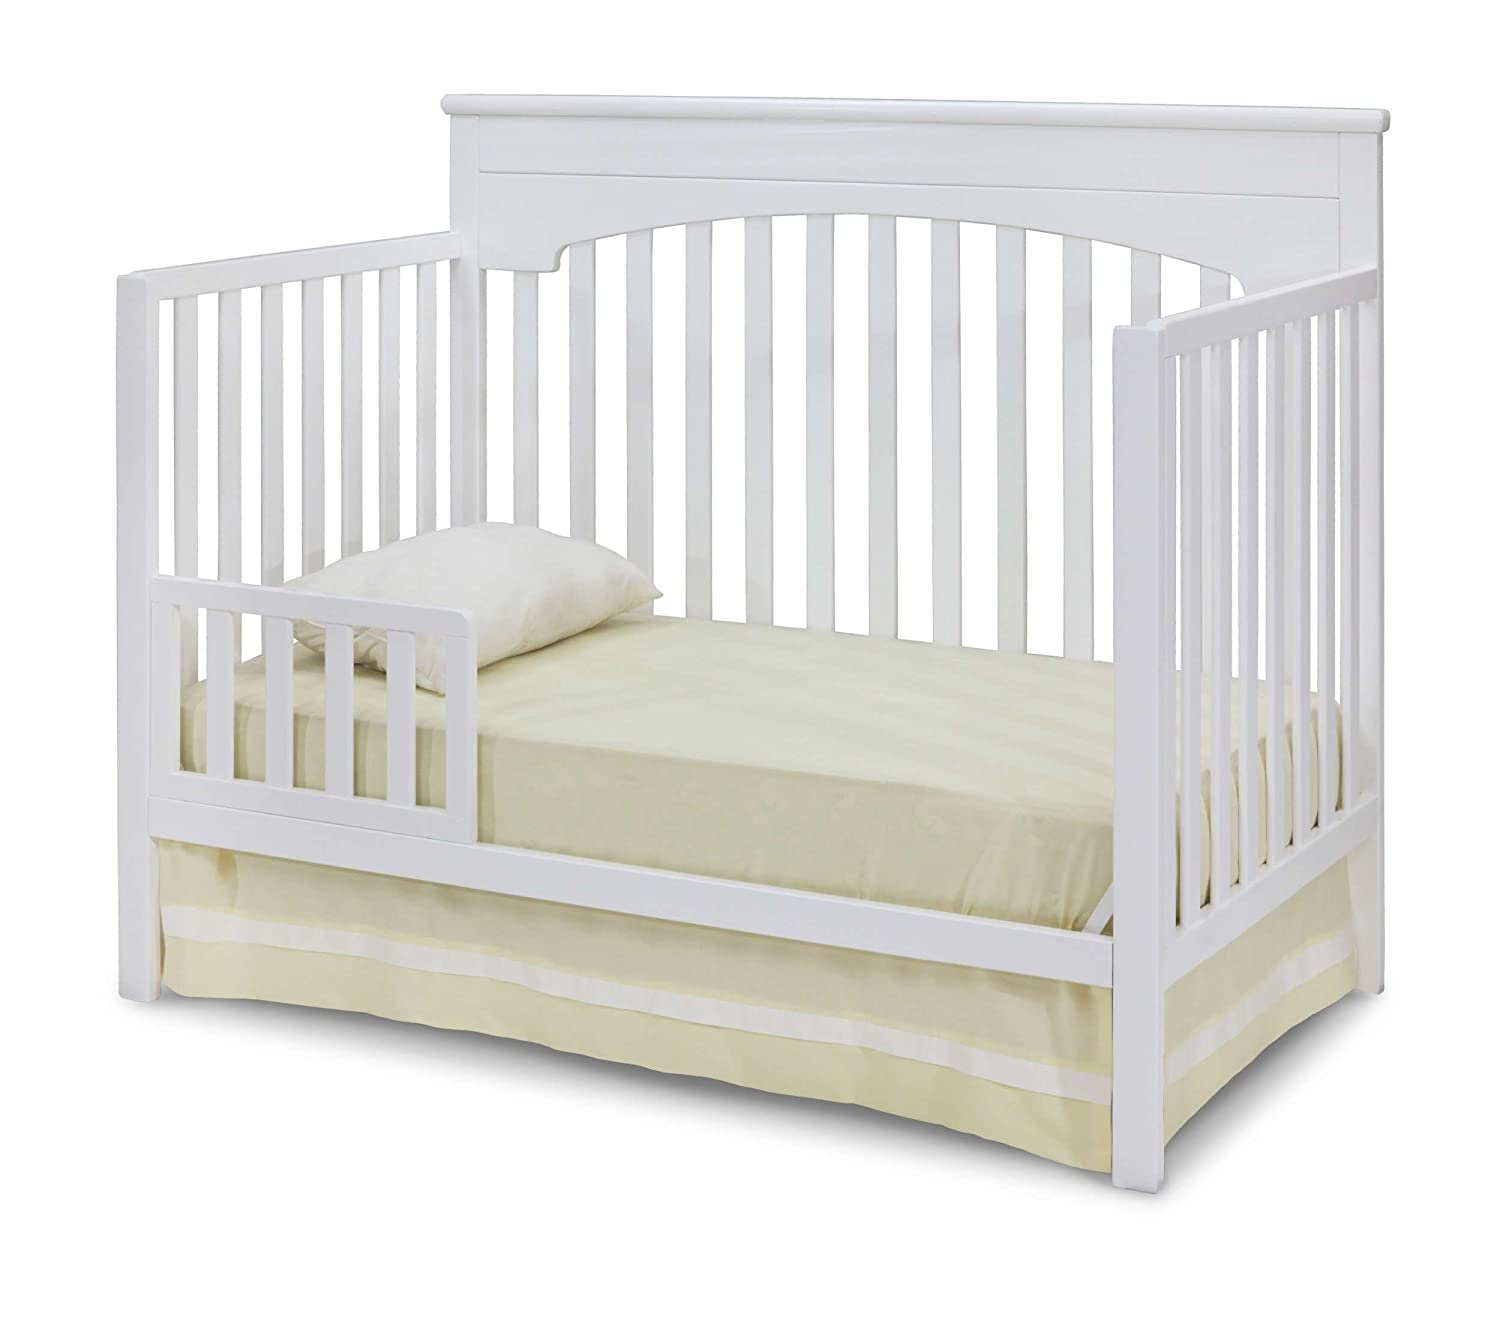 cribs bedroom metal construction style white frame ashland baby one in two crib mattress combines practicality nursery furniture part three graco foremost safety wood convertible classic the finish room pebble